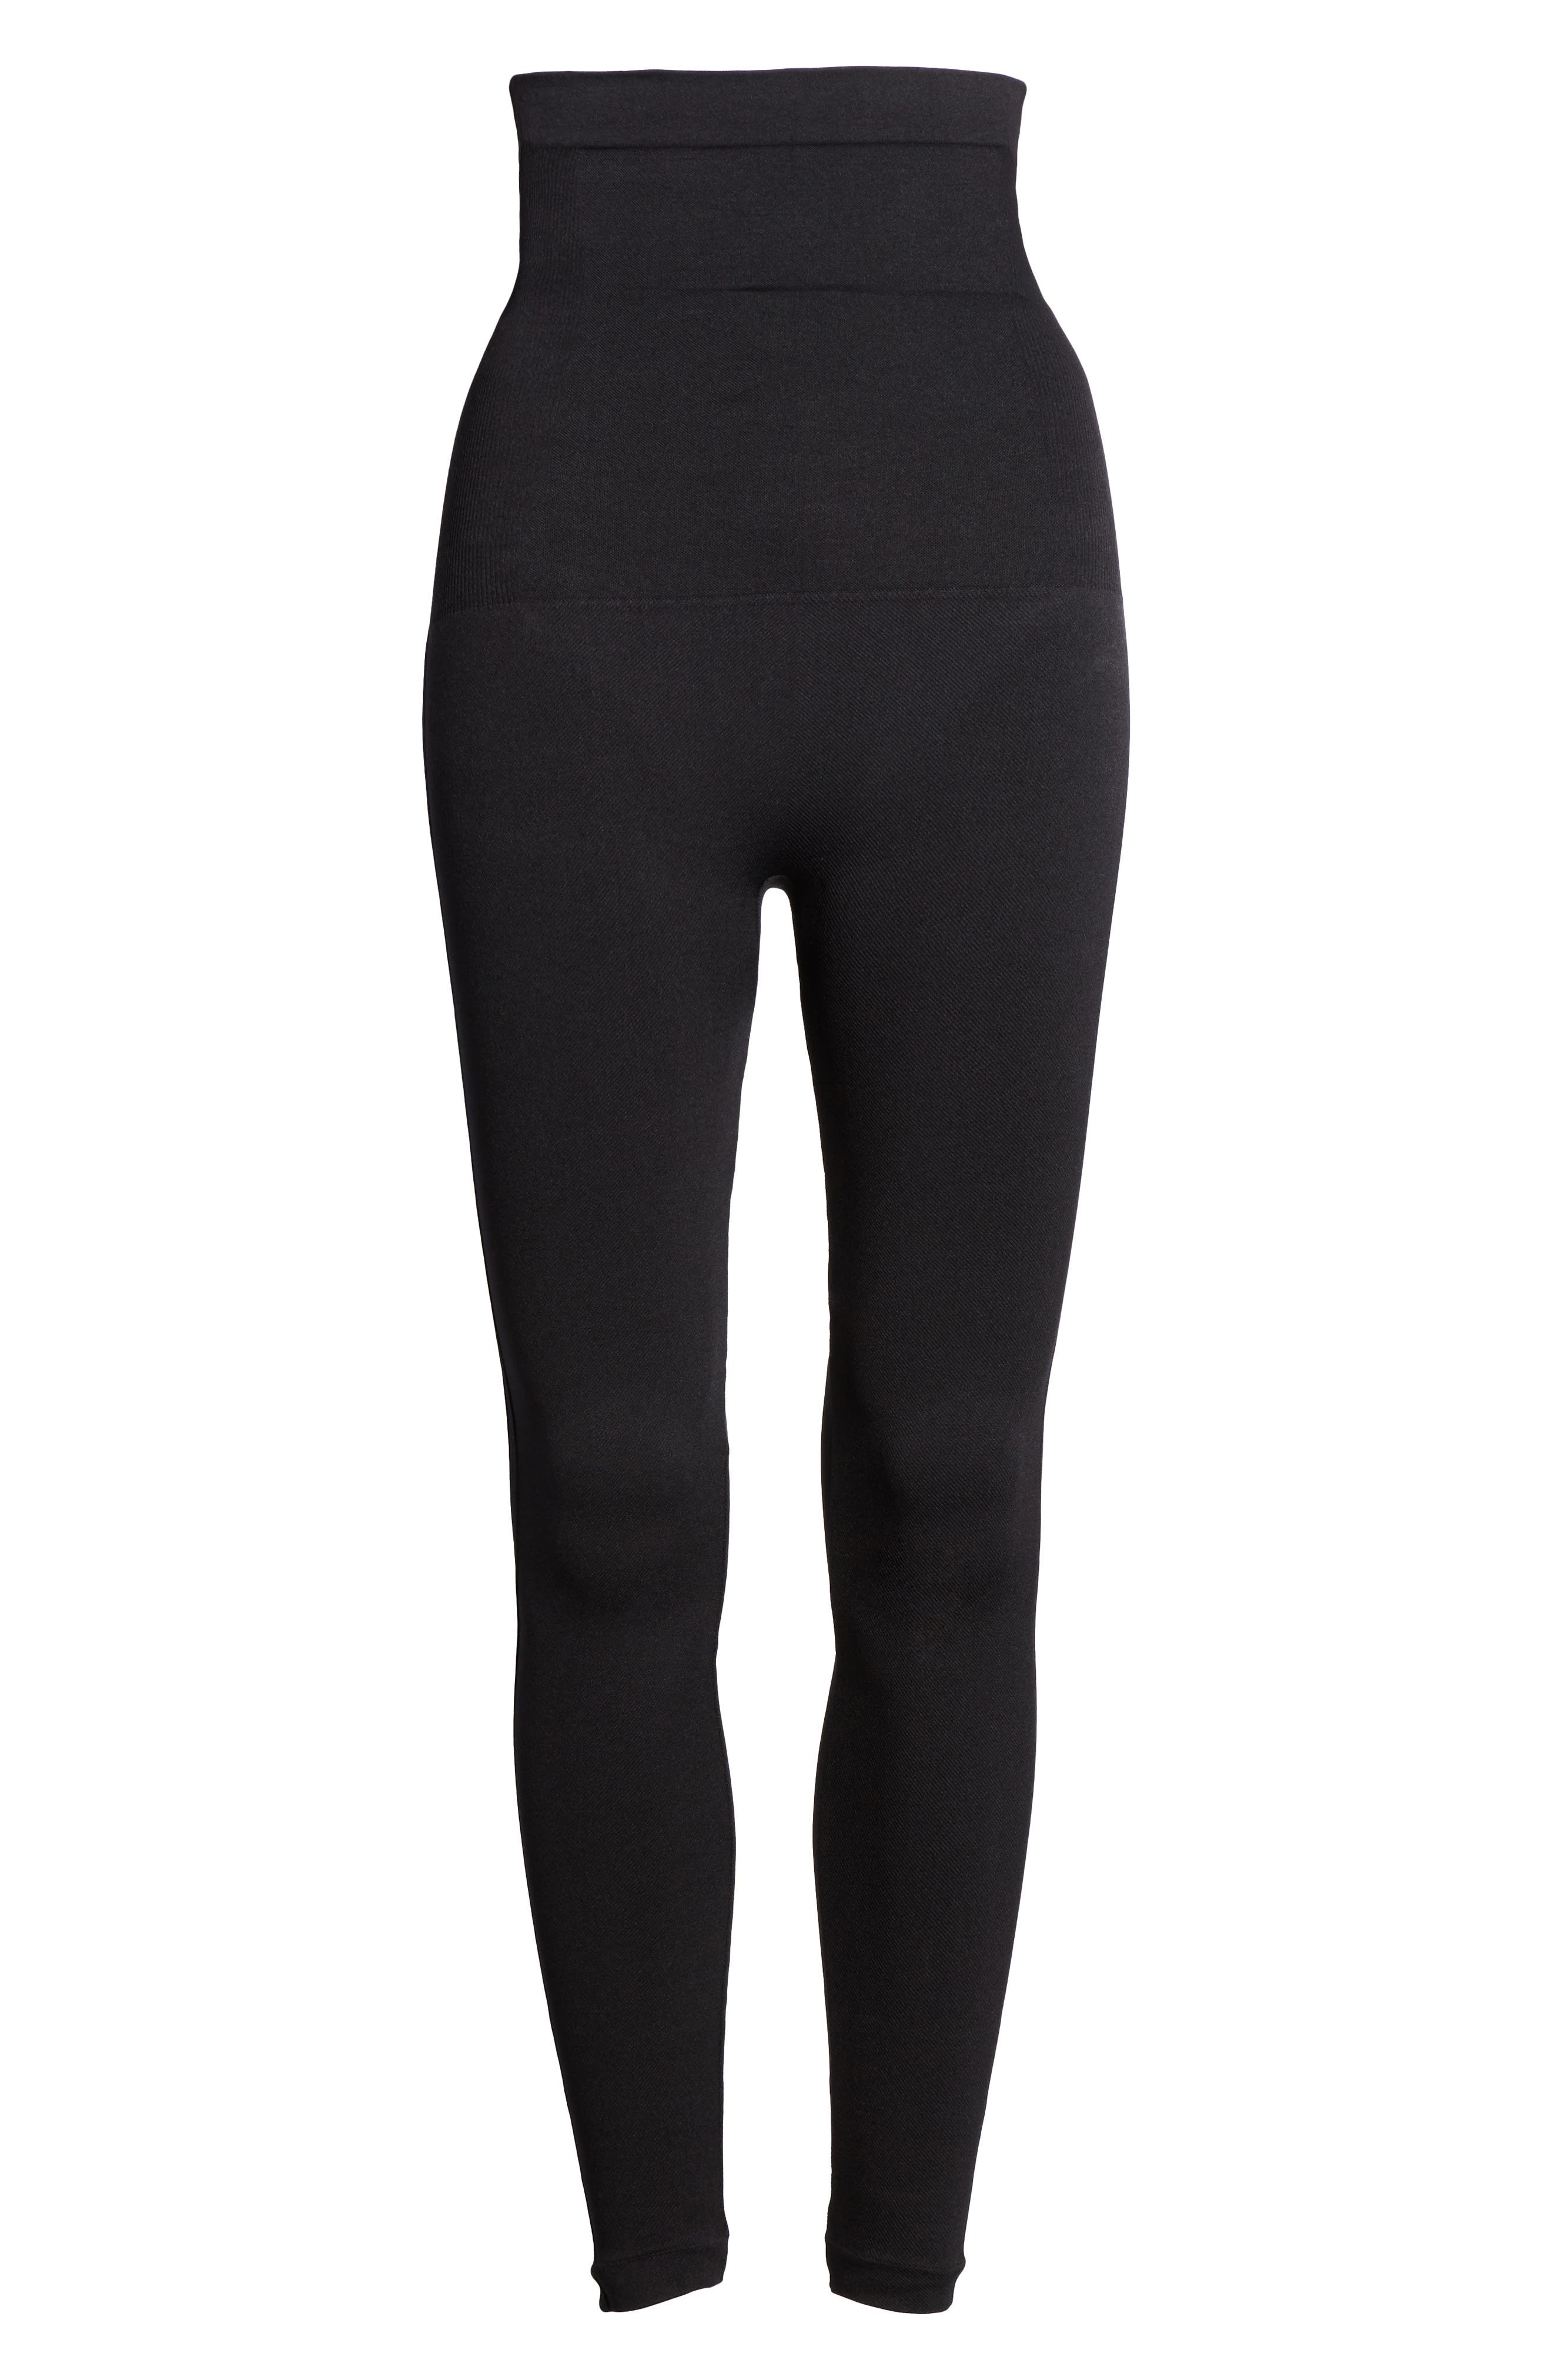 Look At Me Now High Waist Seamless Leggings,                             Alternate thumbnail 6, color,                             Very Black